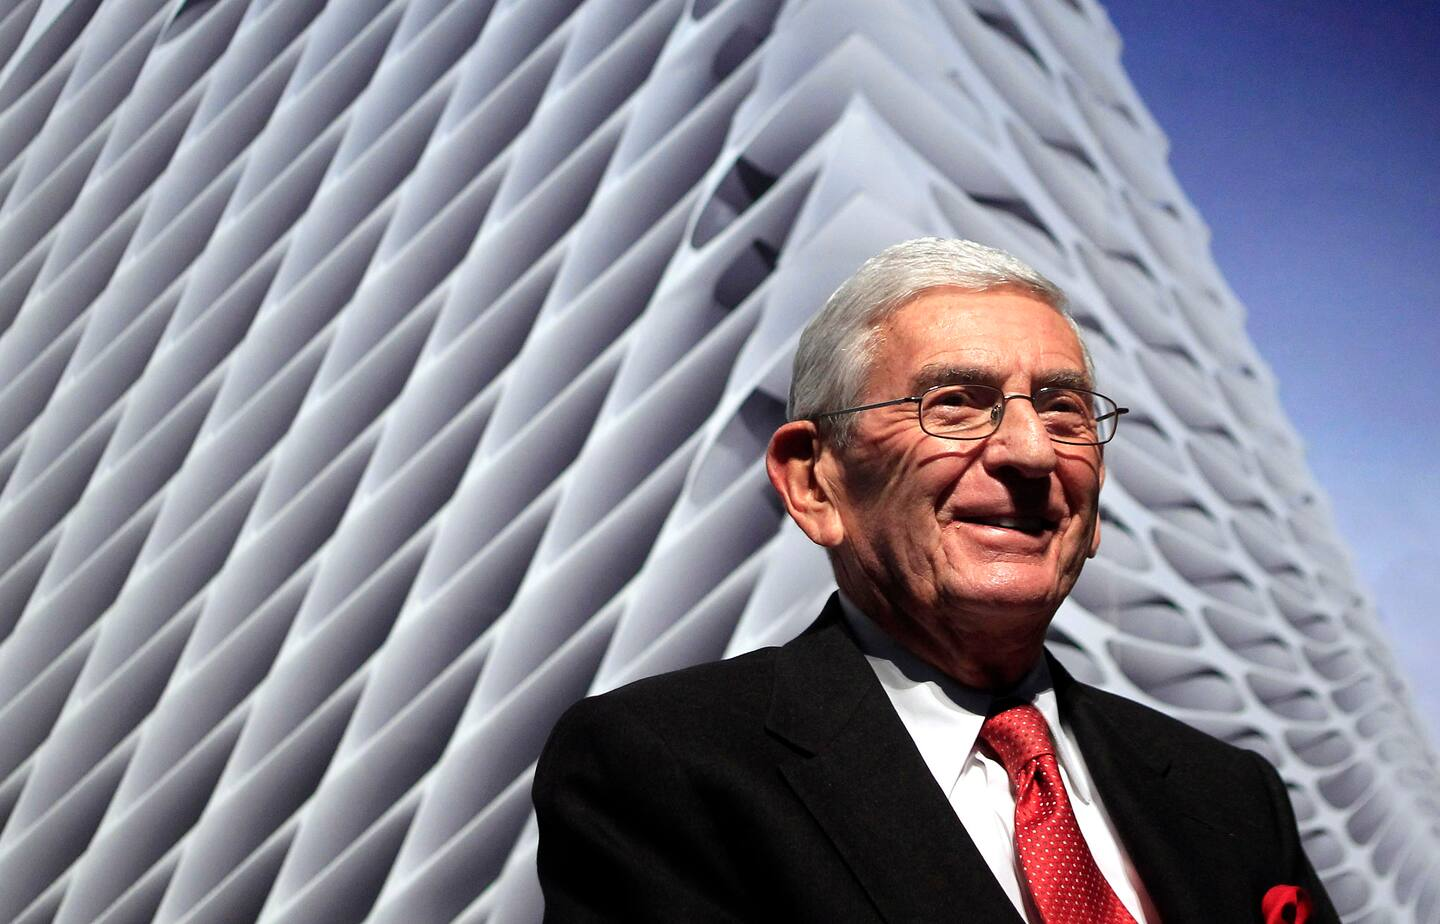 Eli Broad's deep generosity also revealed the downside of American-style cultural philanthropy